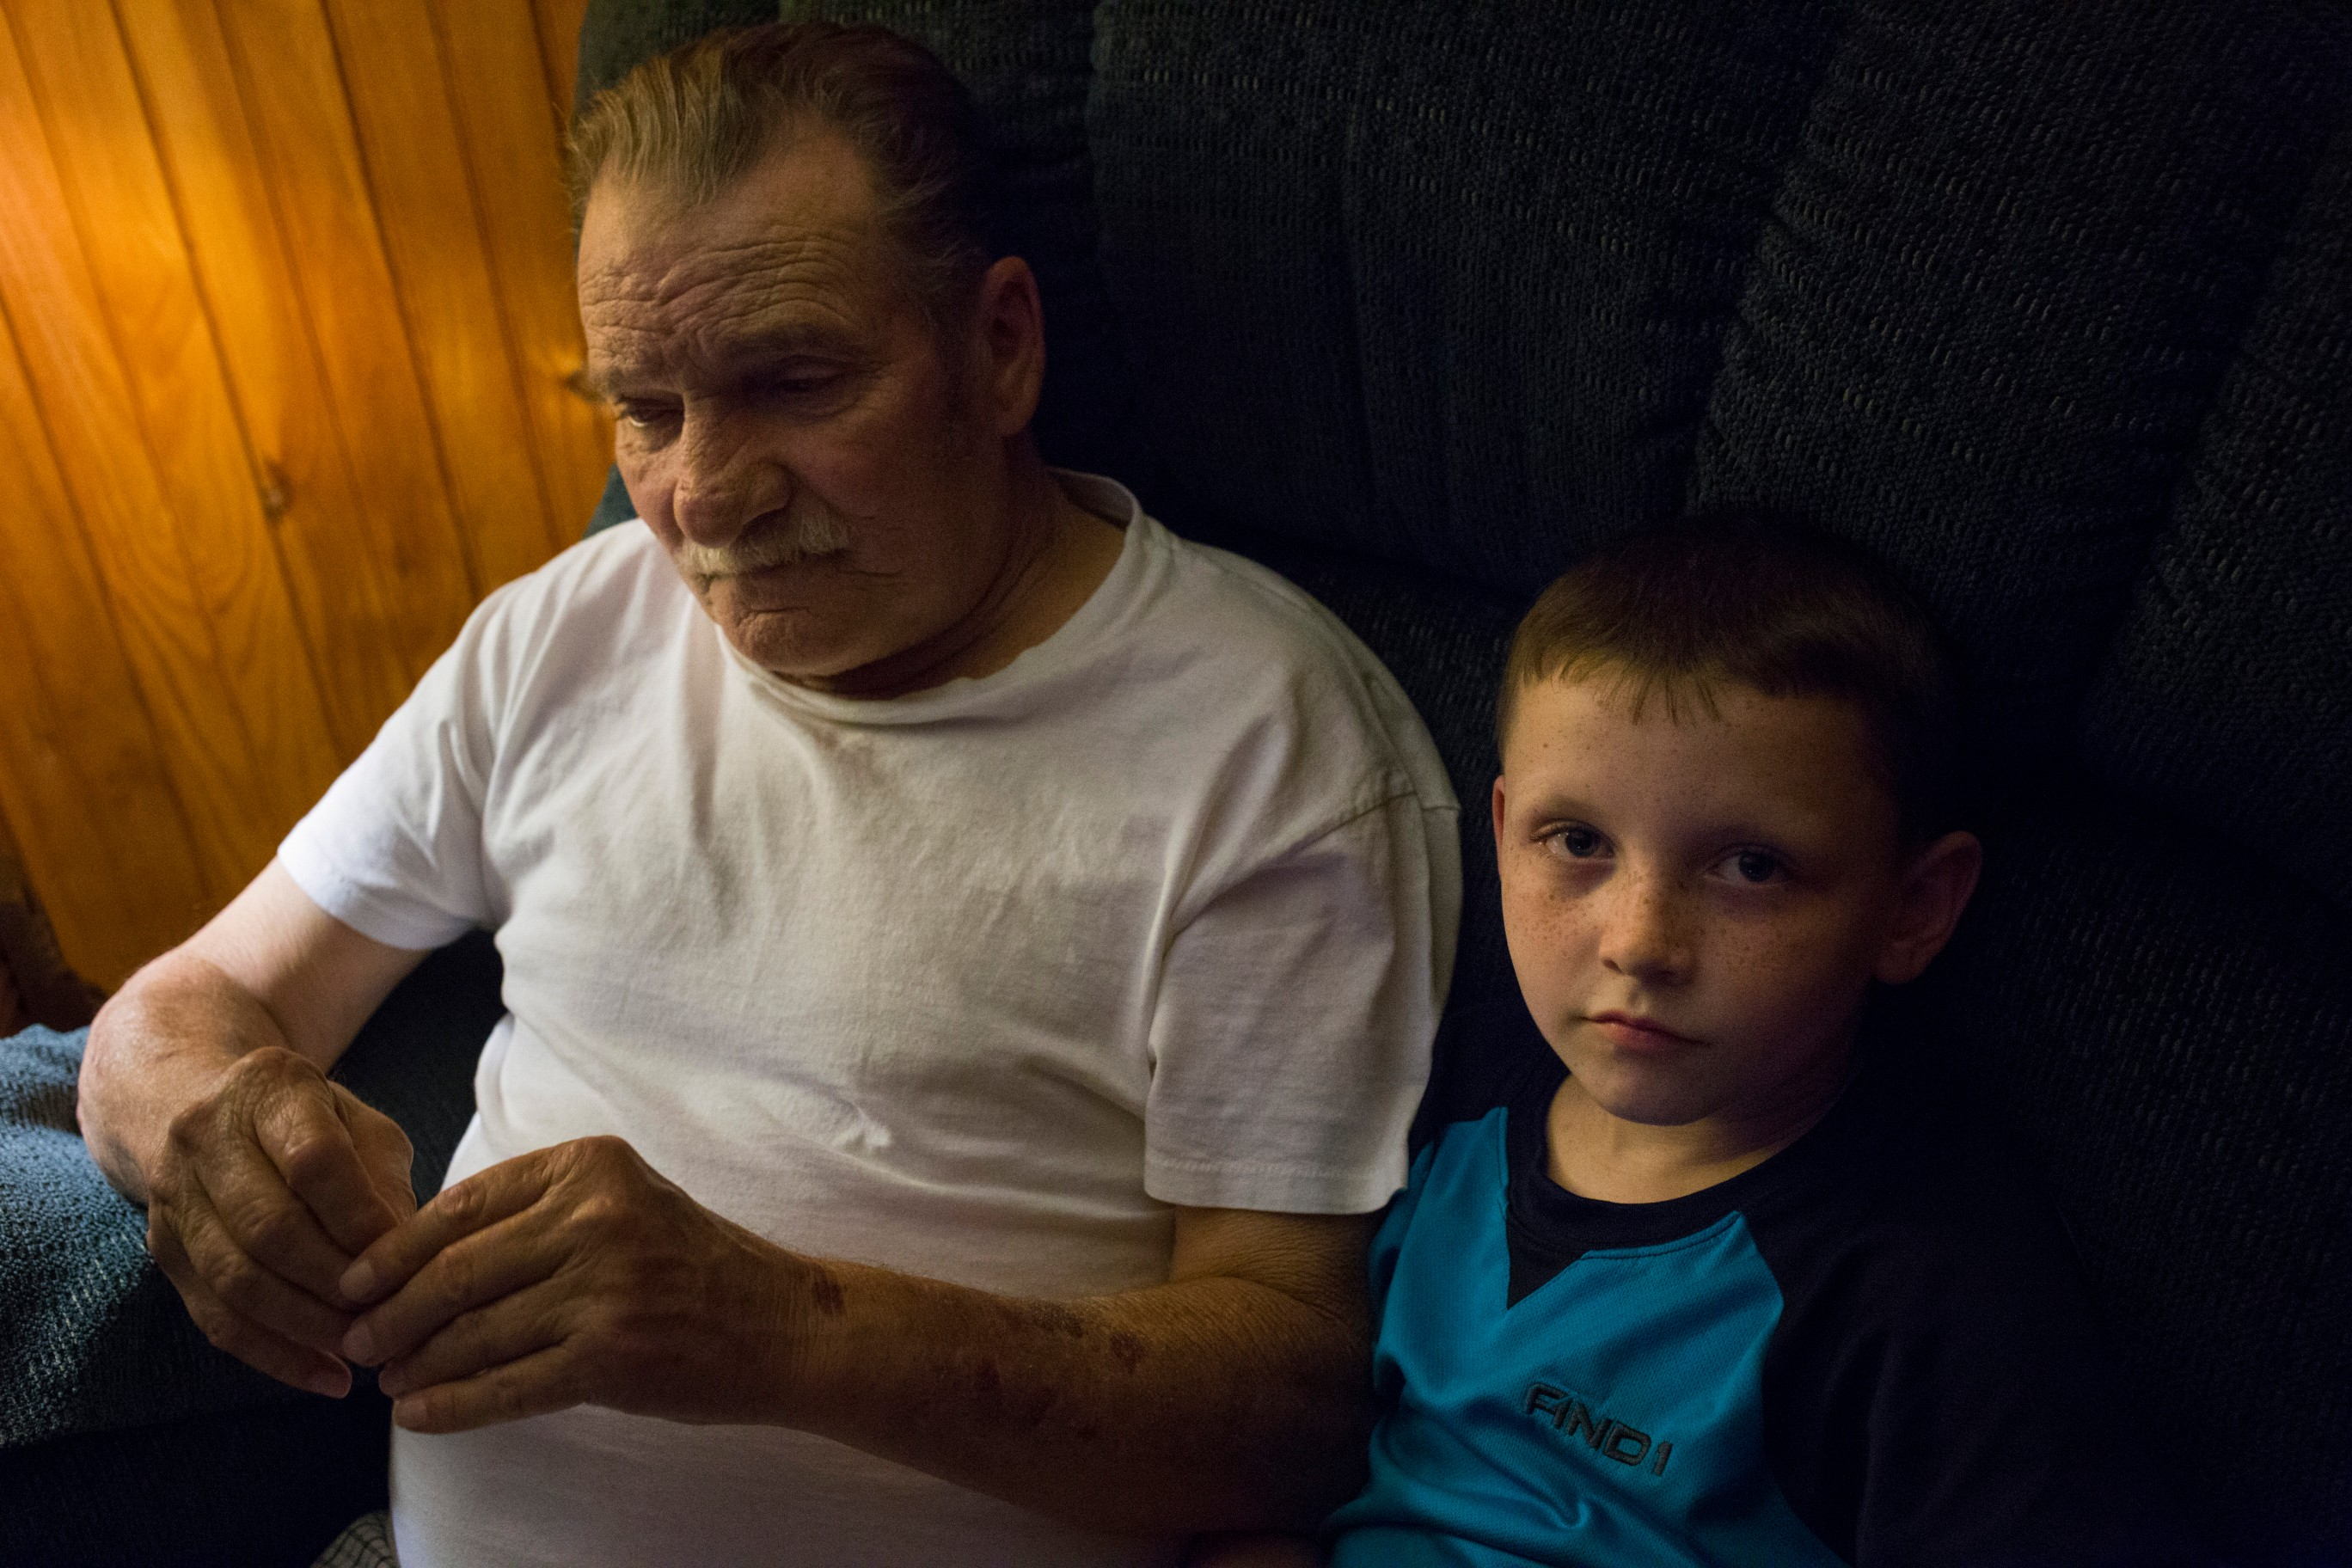 Chase Newman, 8, sits in a reclining chair with his grandfather Doff Justice as he watches TV at their home in Grethel Ky., on Thursday, September 28, 2017. (Photo by Brittany Greeson/GroundTruth)